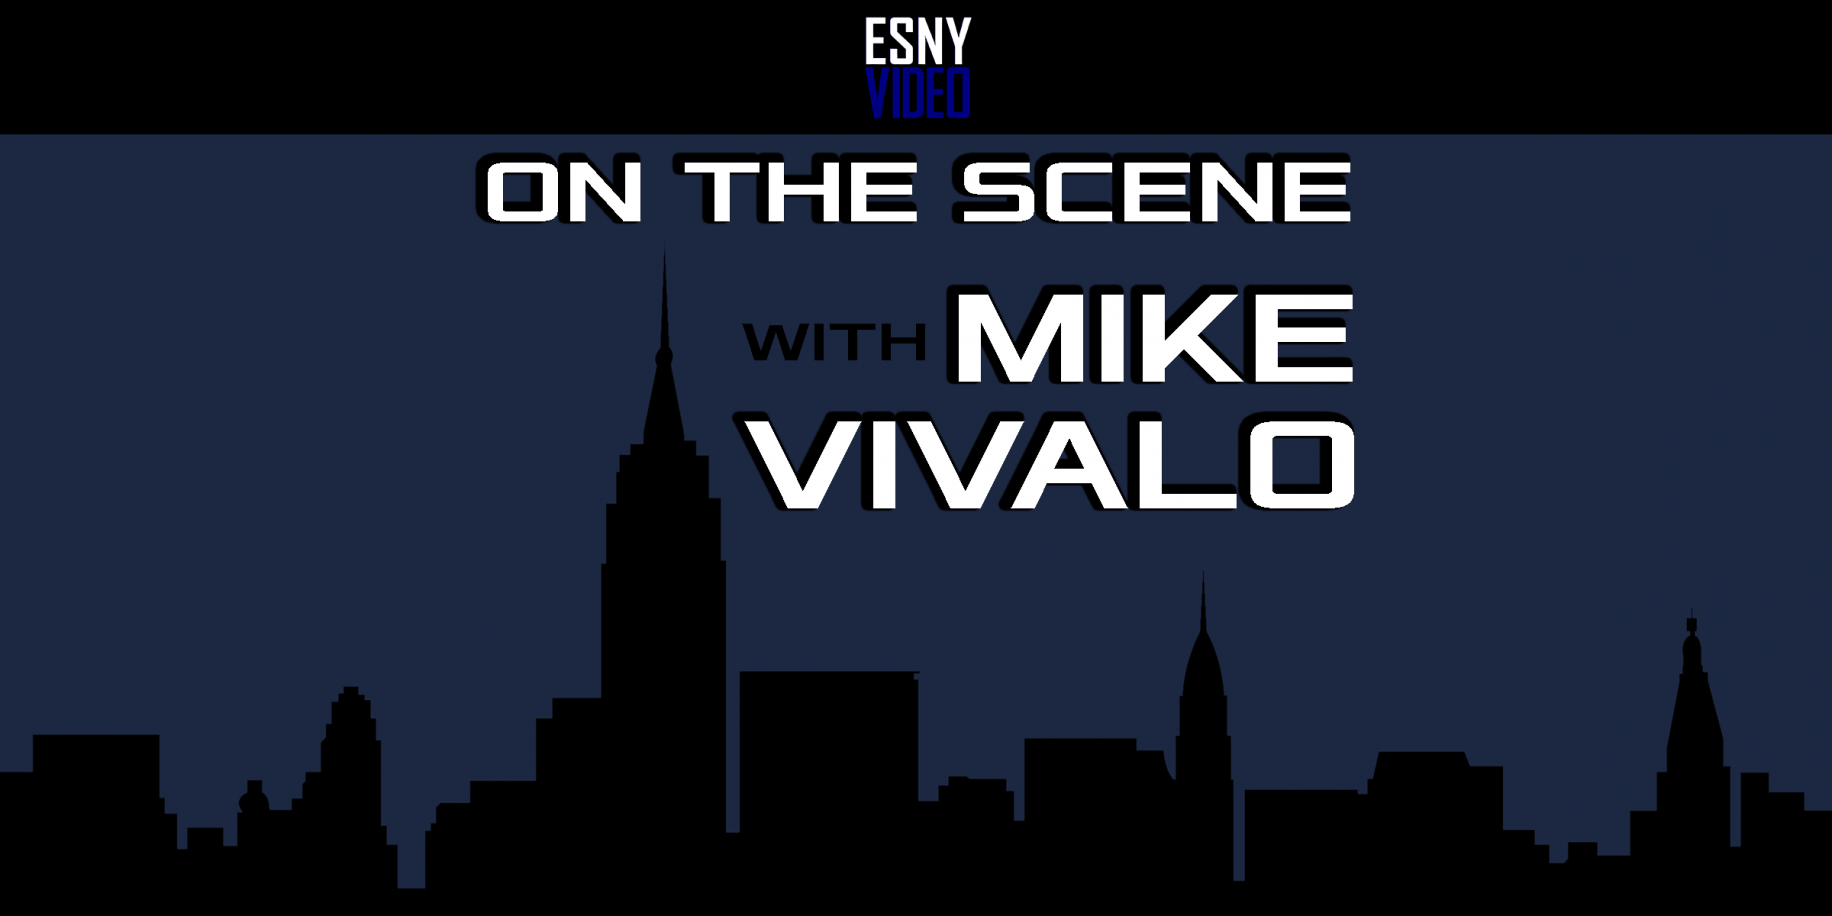 On the Scene with Mike Vivalo